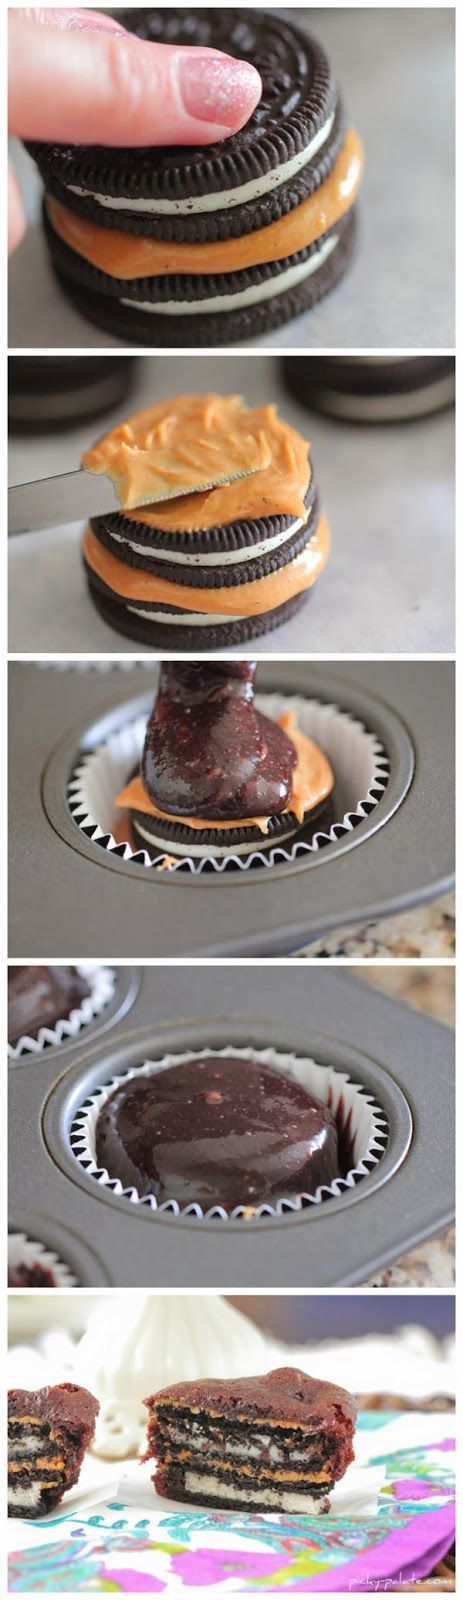 Oreo and Peanut Butter Brownie Cakes Recipe